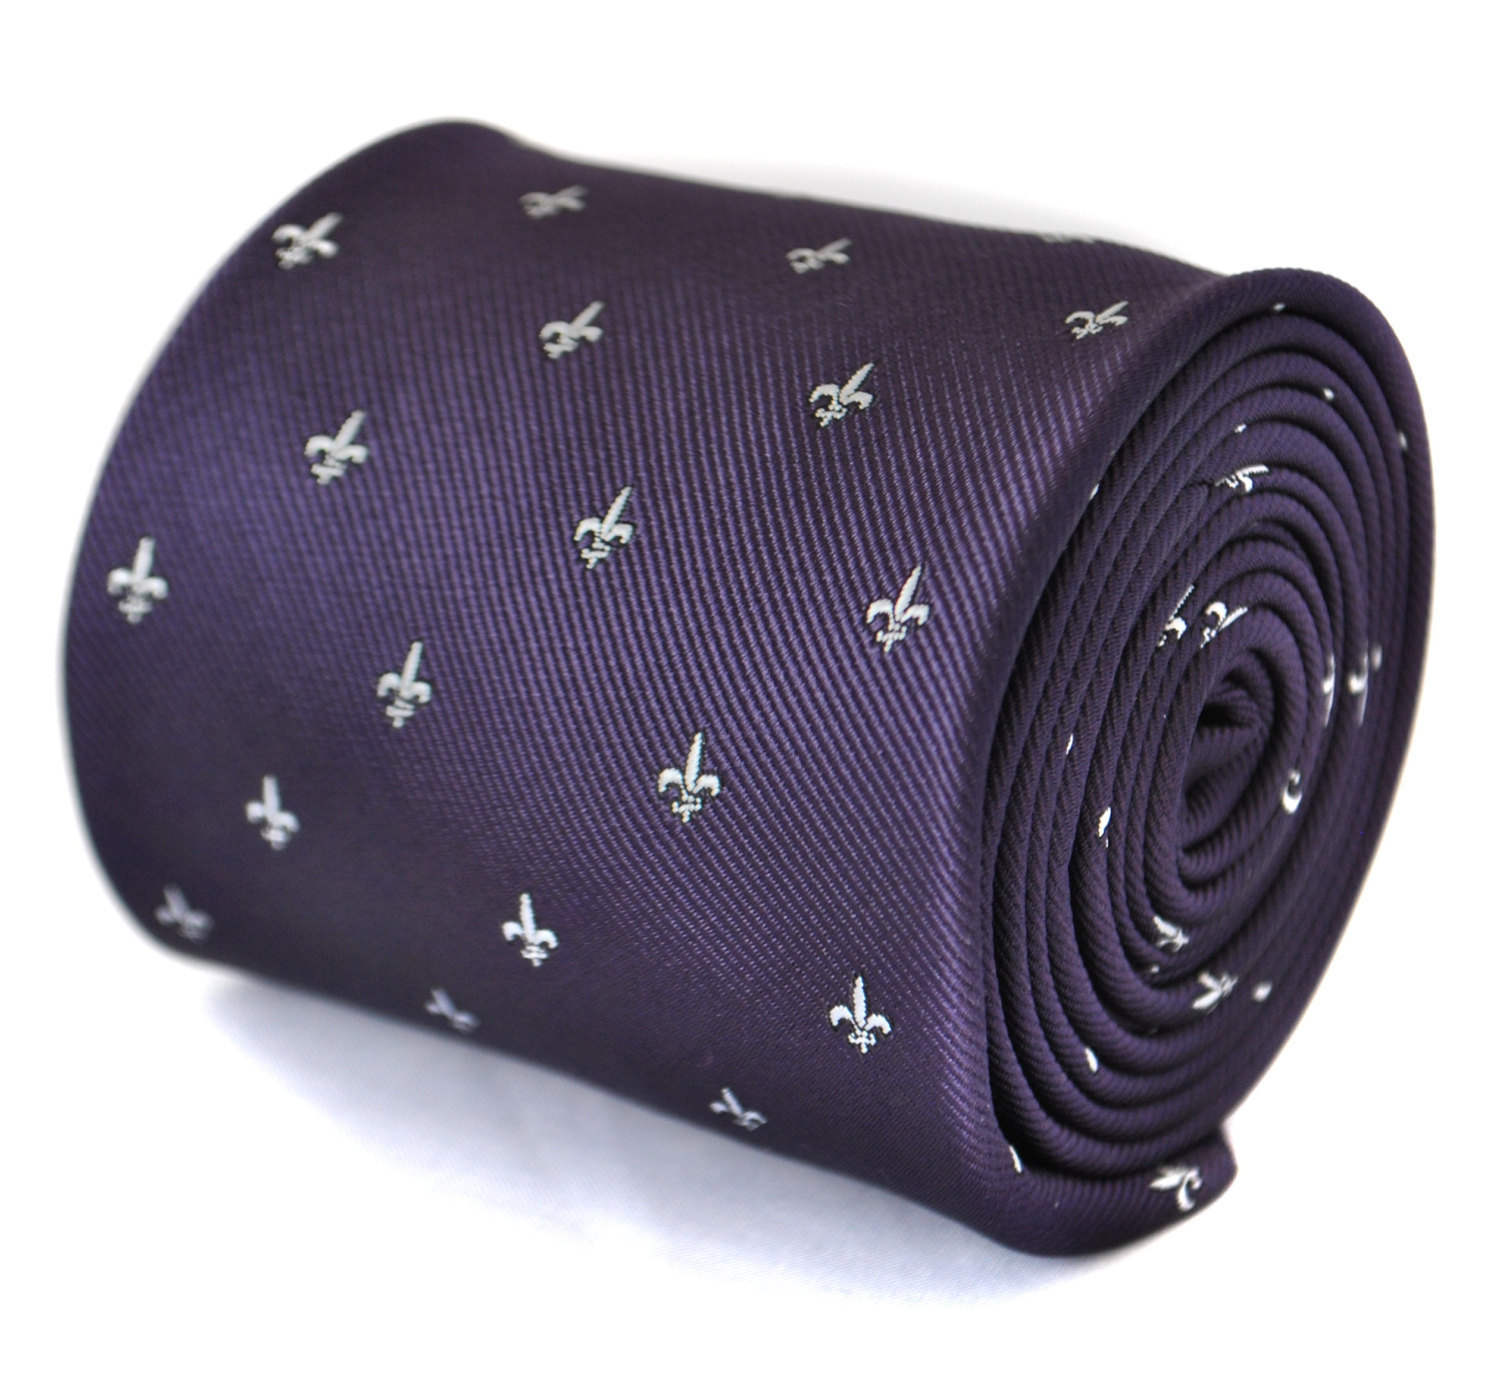 dark purple tie with fleur de lis design with signature floral design to rear by